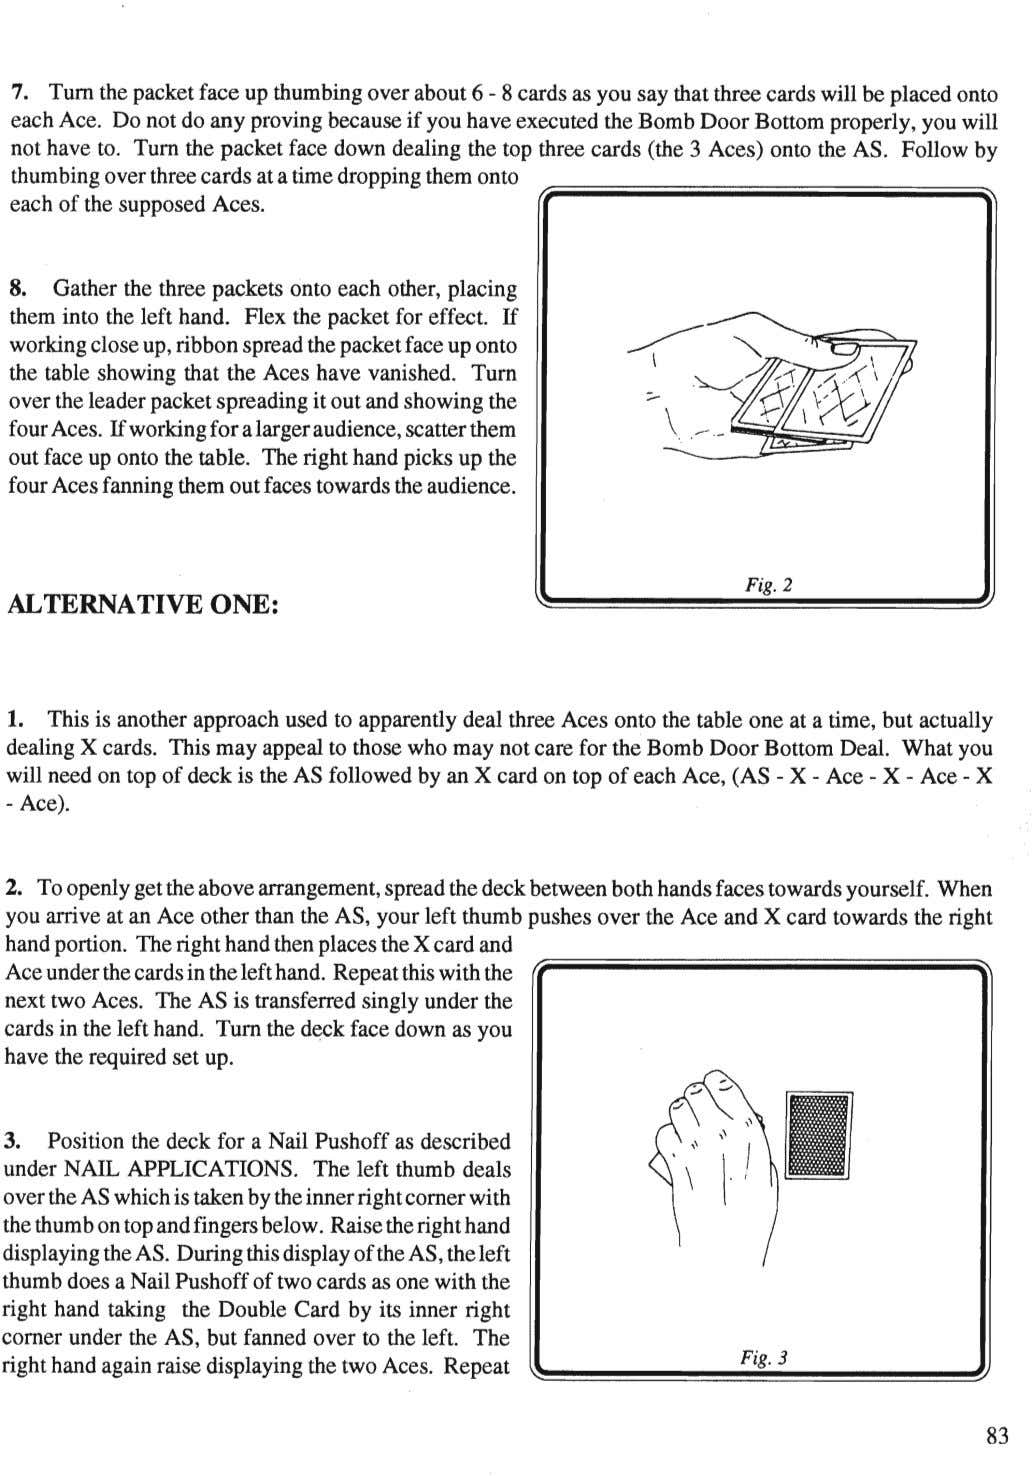 7. Turn the packet face up thumbing over about 6 - 8 cards as you